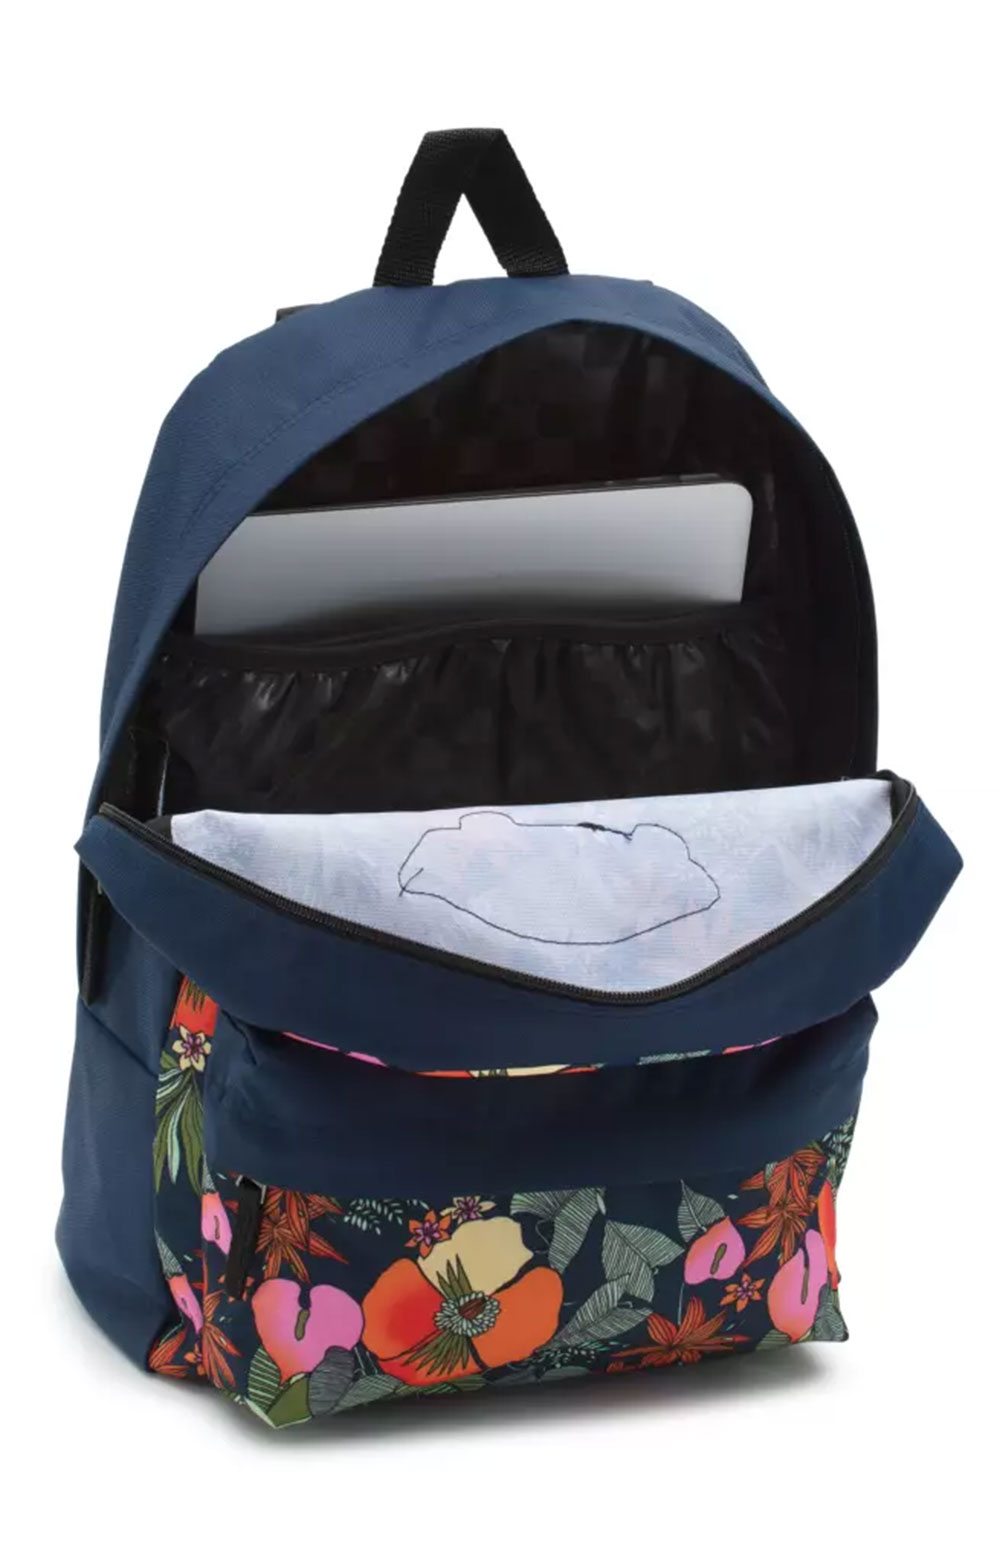 Realm Printed Backpack - Multi Tropic Dress Blues  3